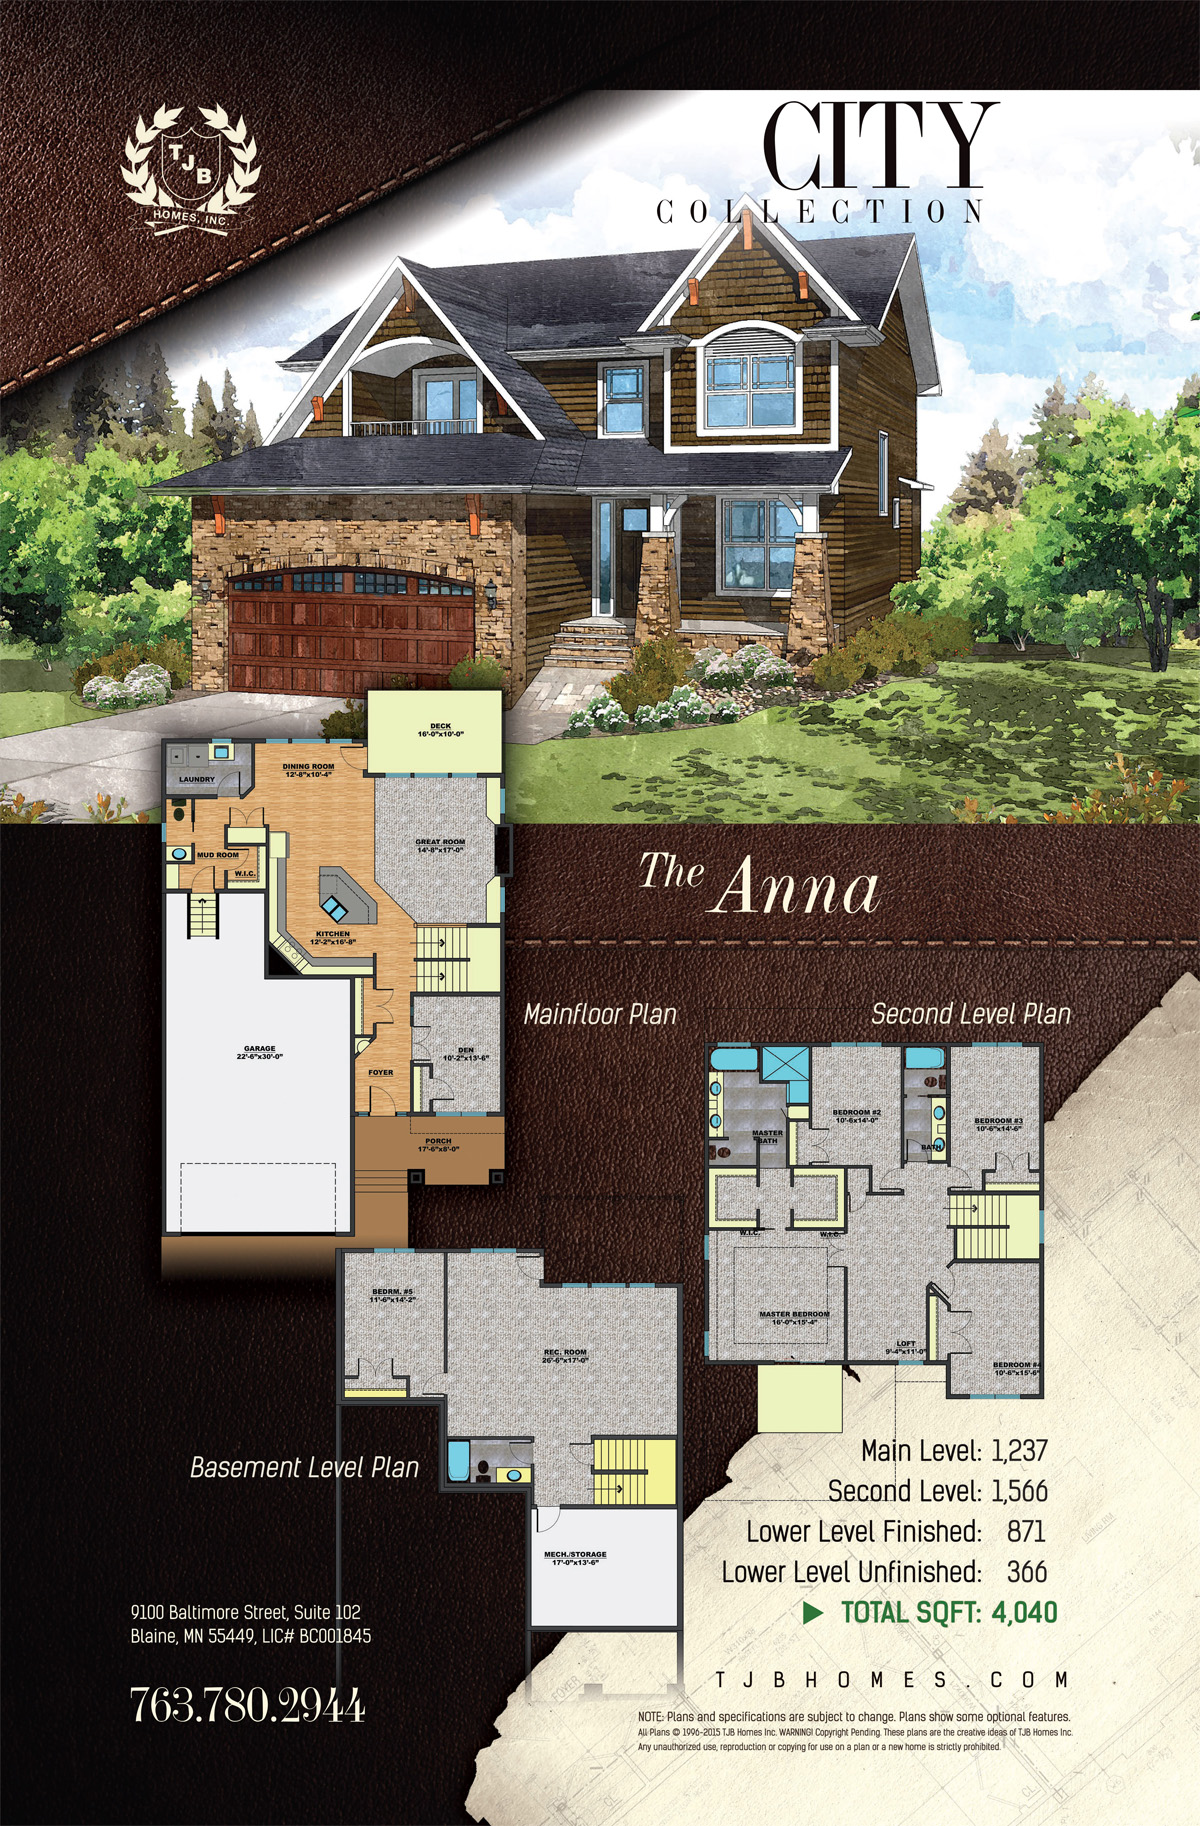 City Collection Home Plans - The Anna